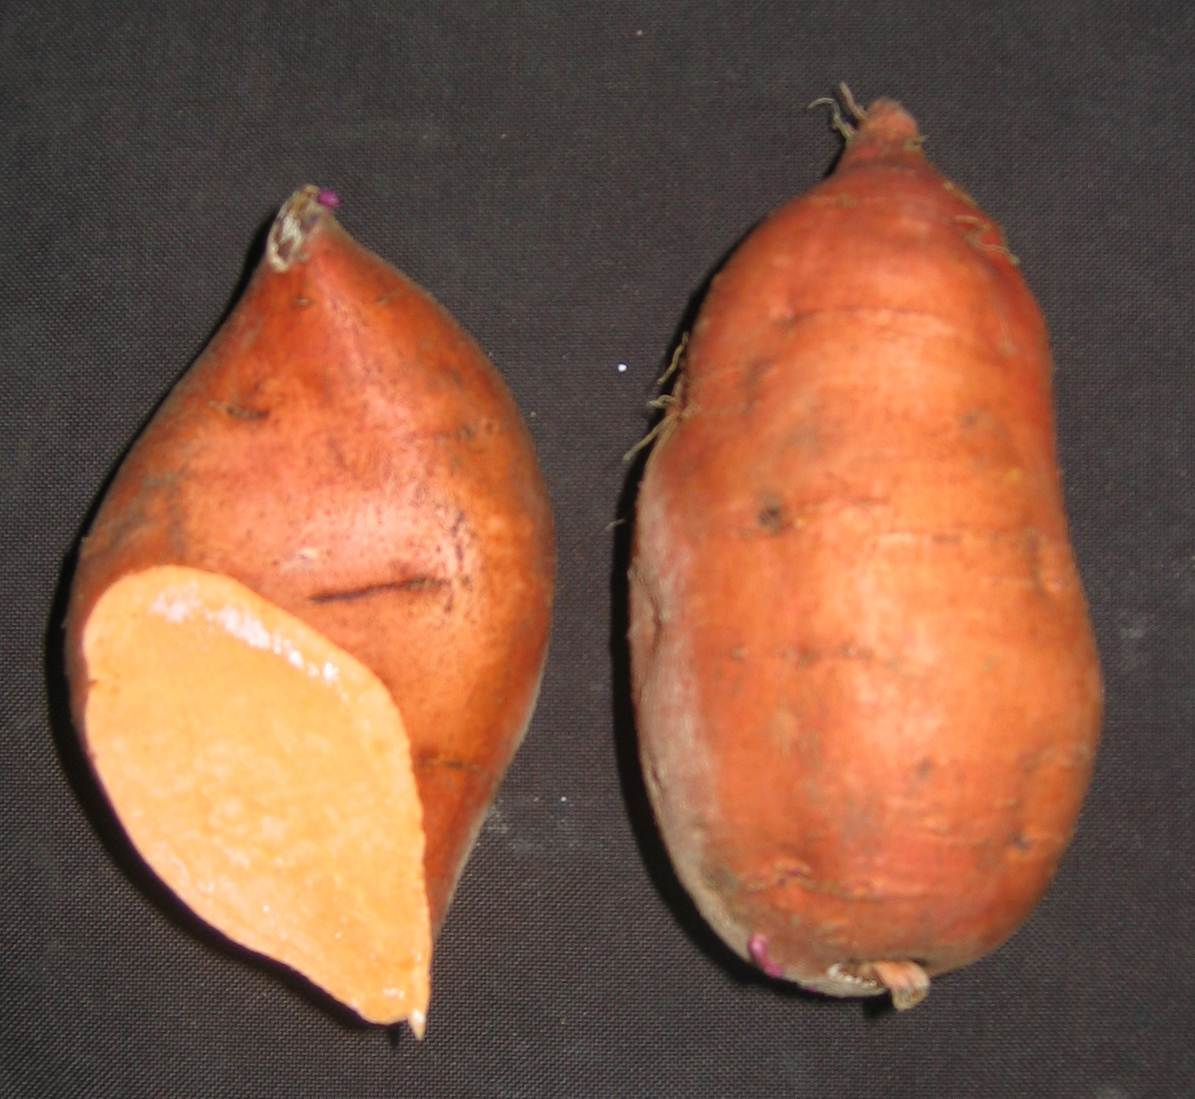 Two sweet potatoes with dark copper skin. One has end cut revealing orangeflesh.